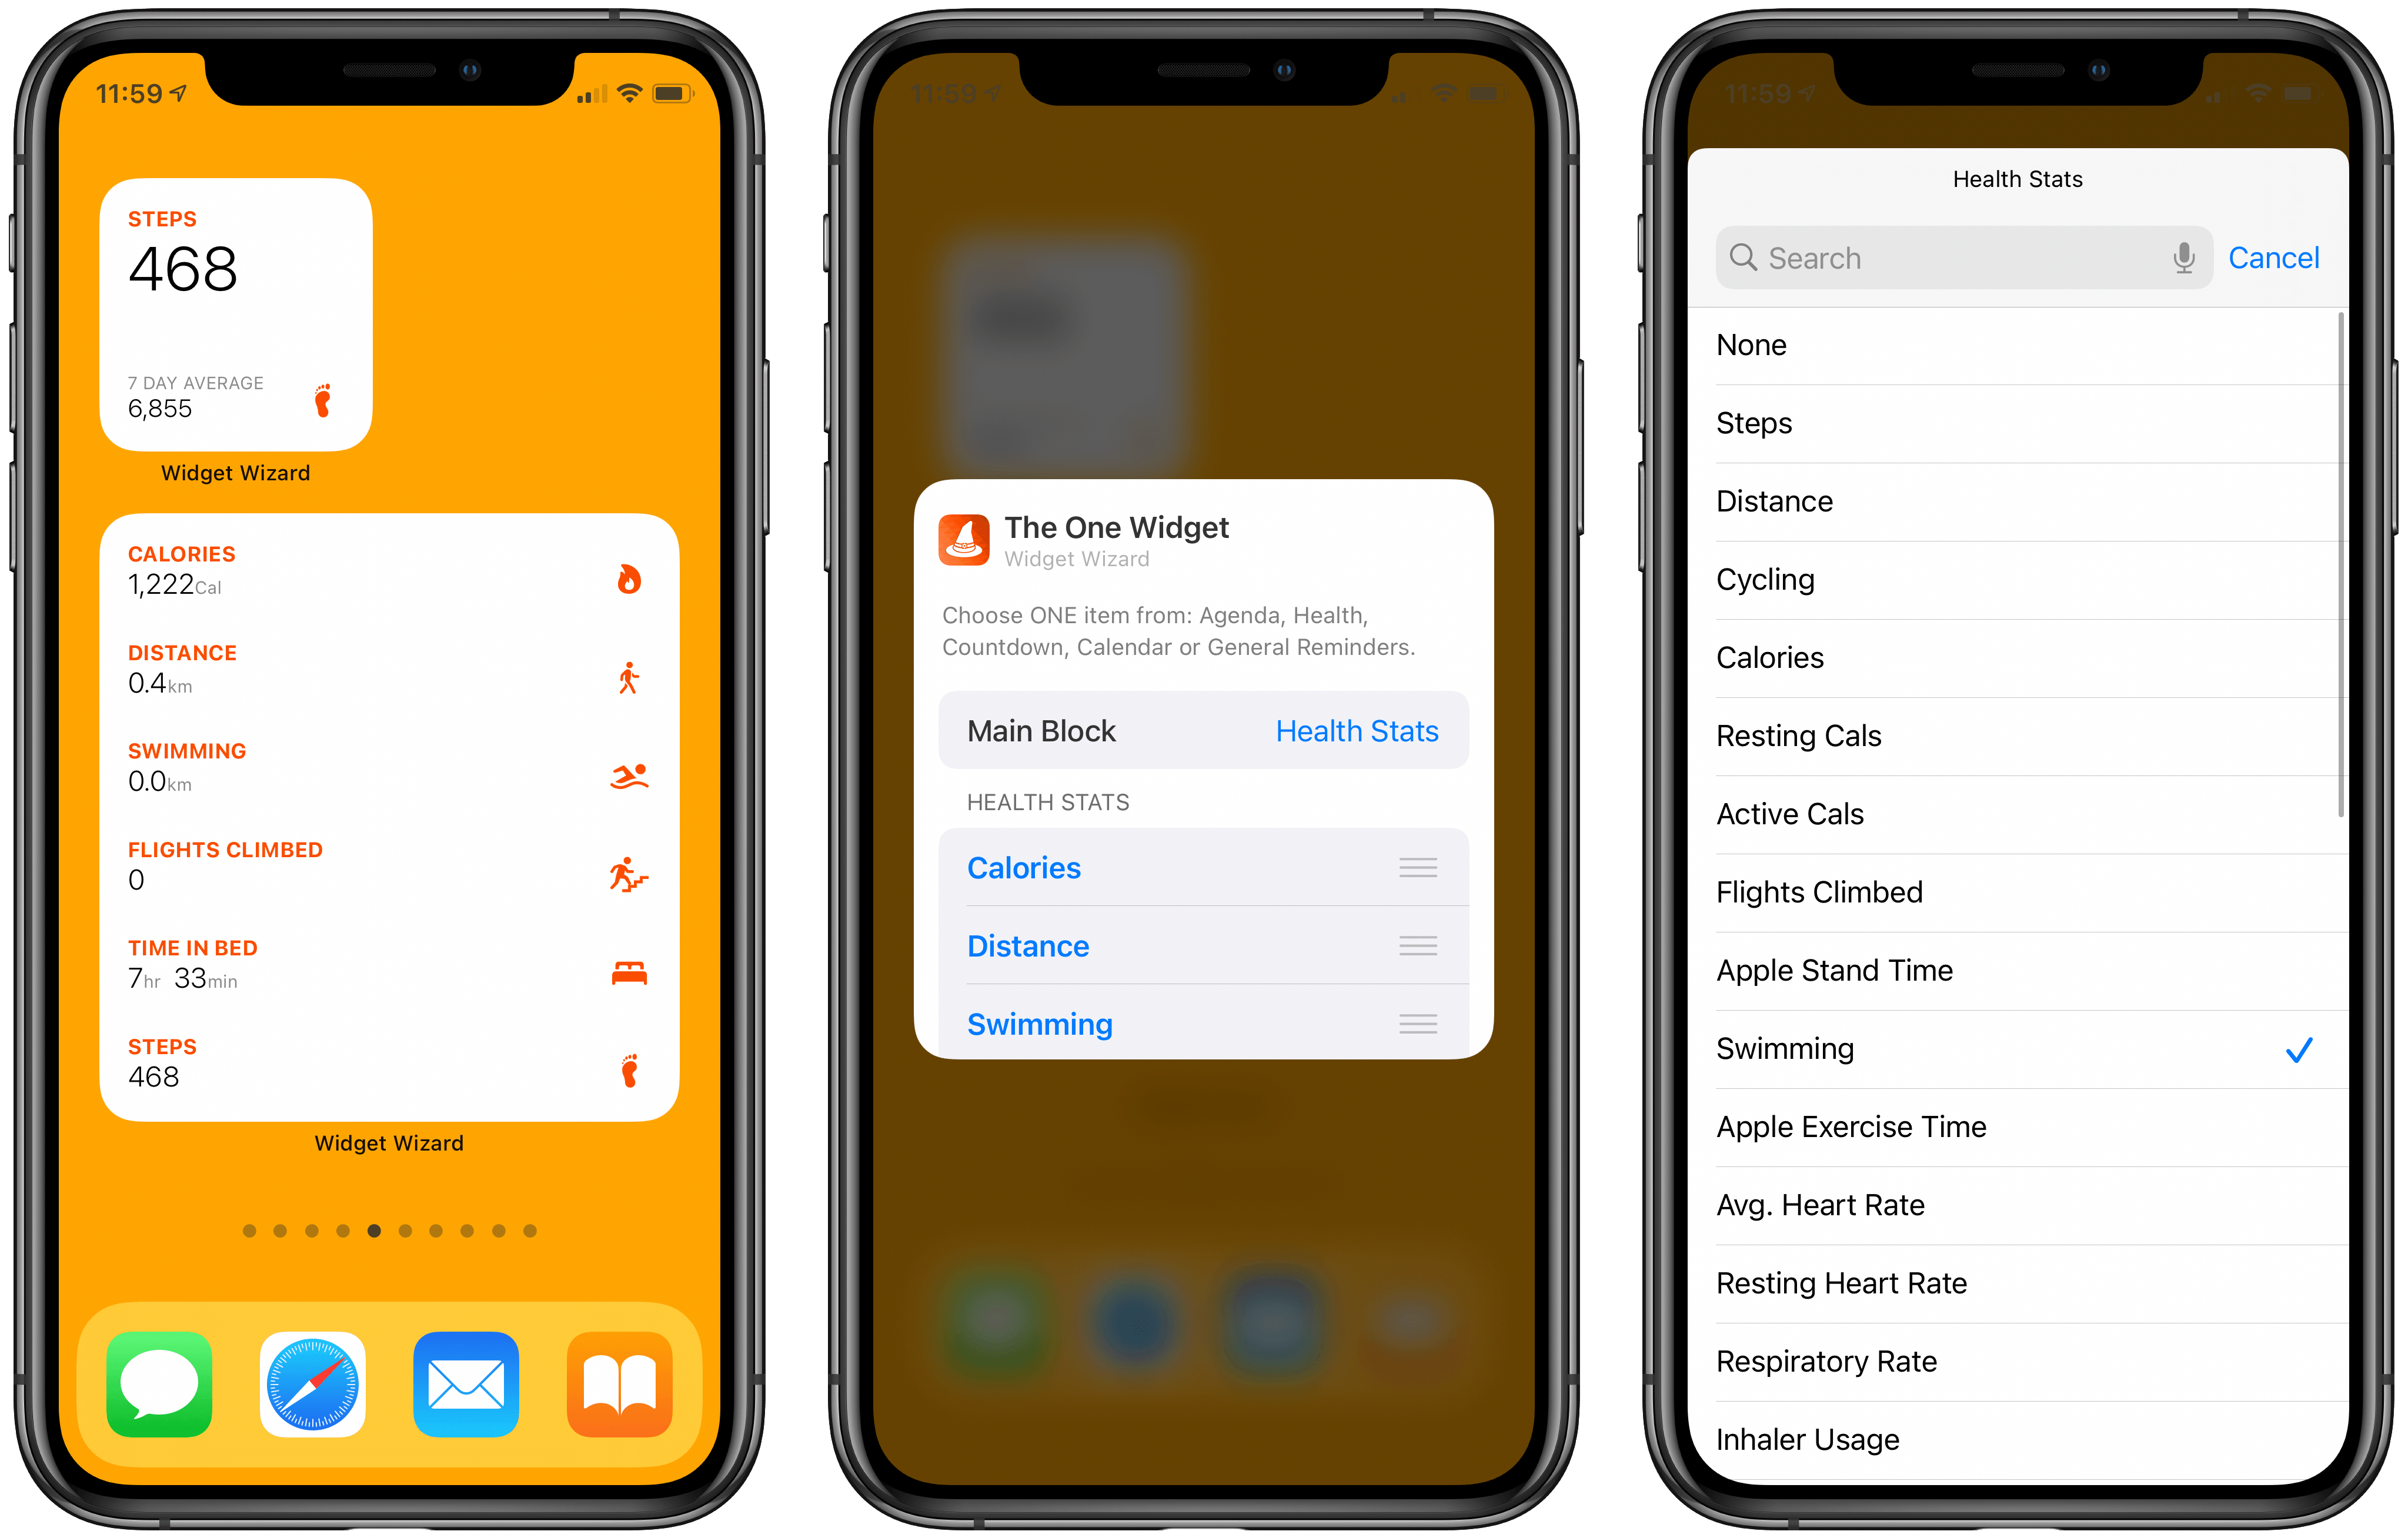 Widget Wizard offers simple widget setup.